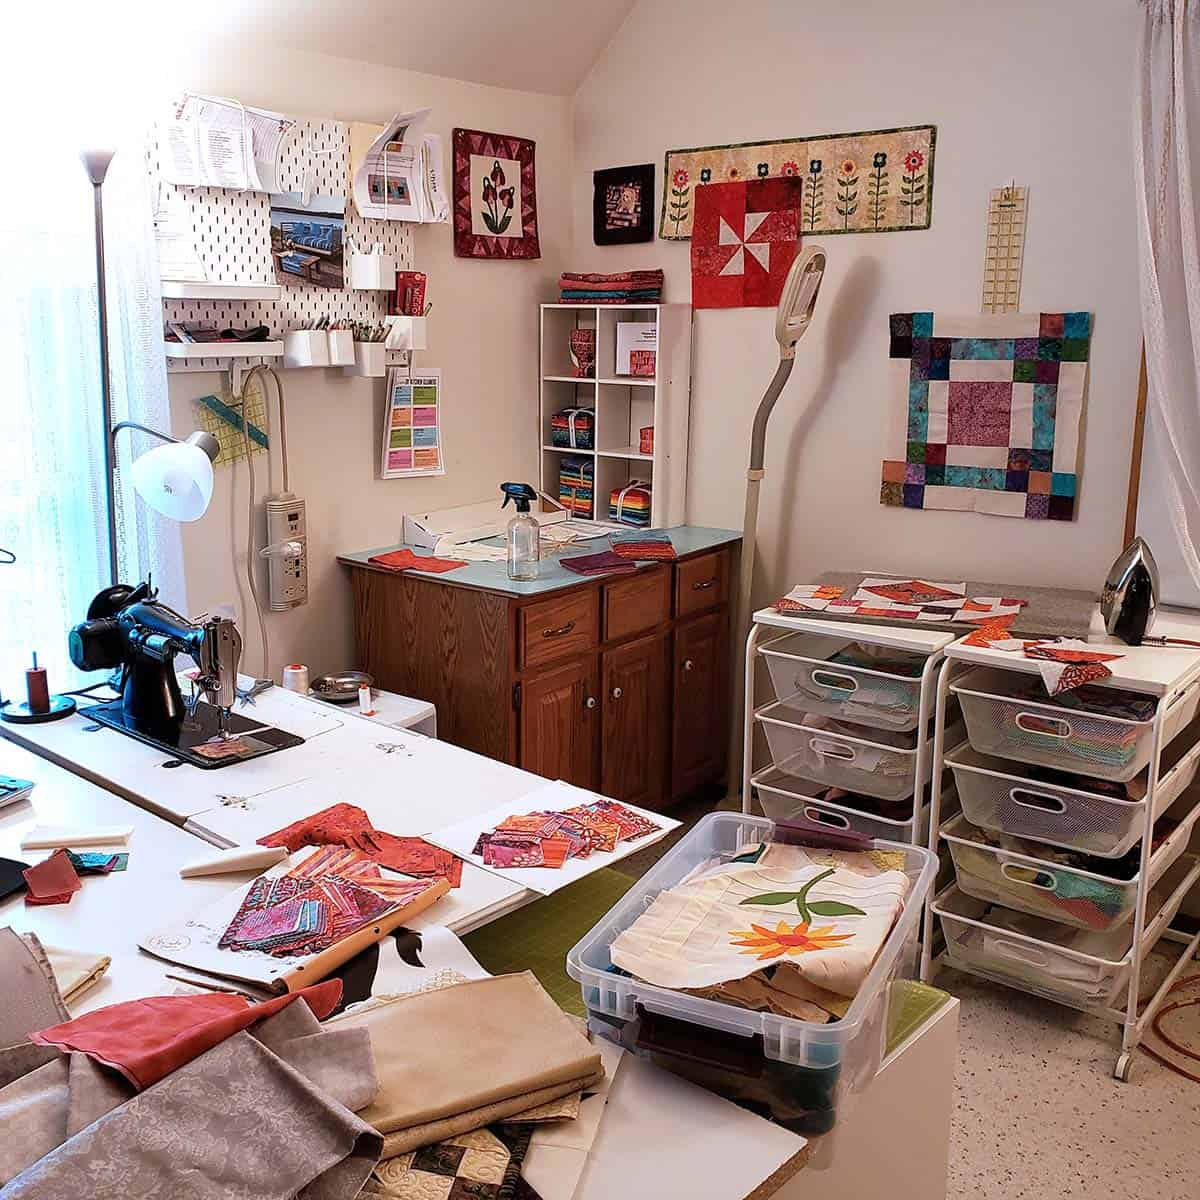 Messy quilt room